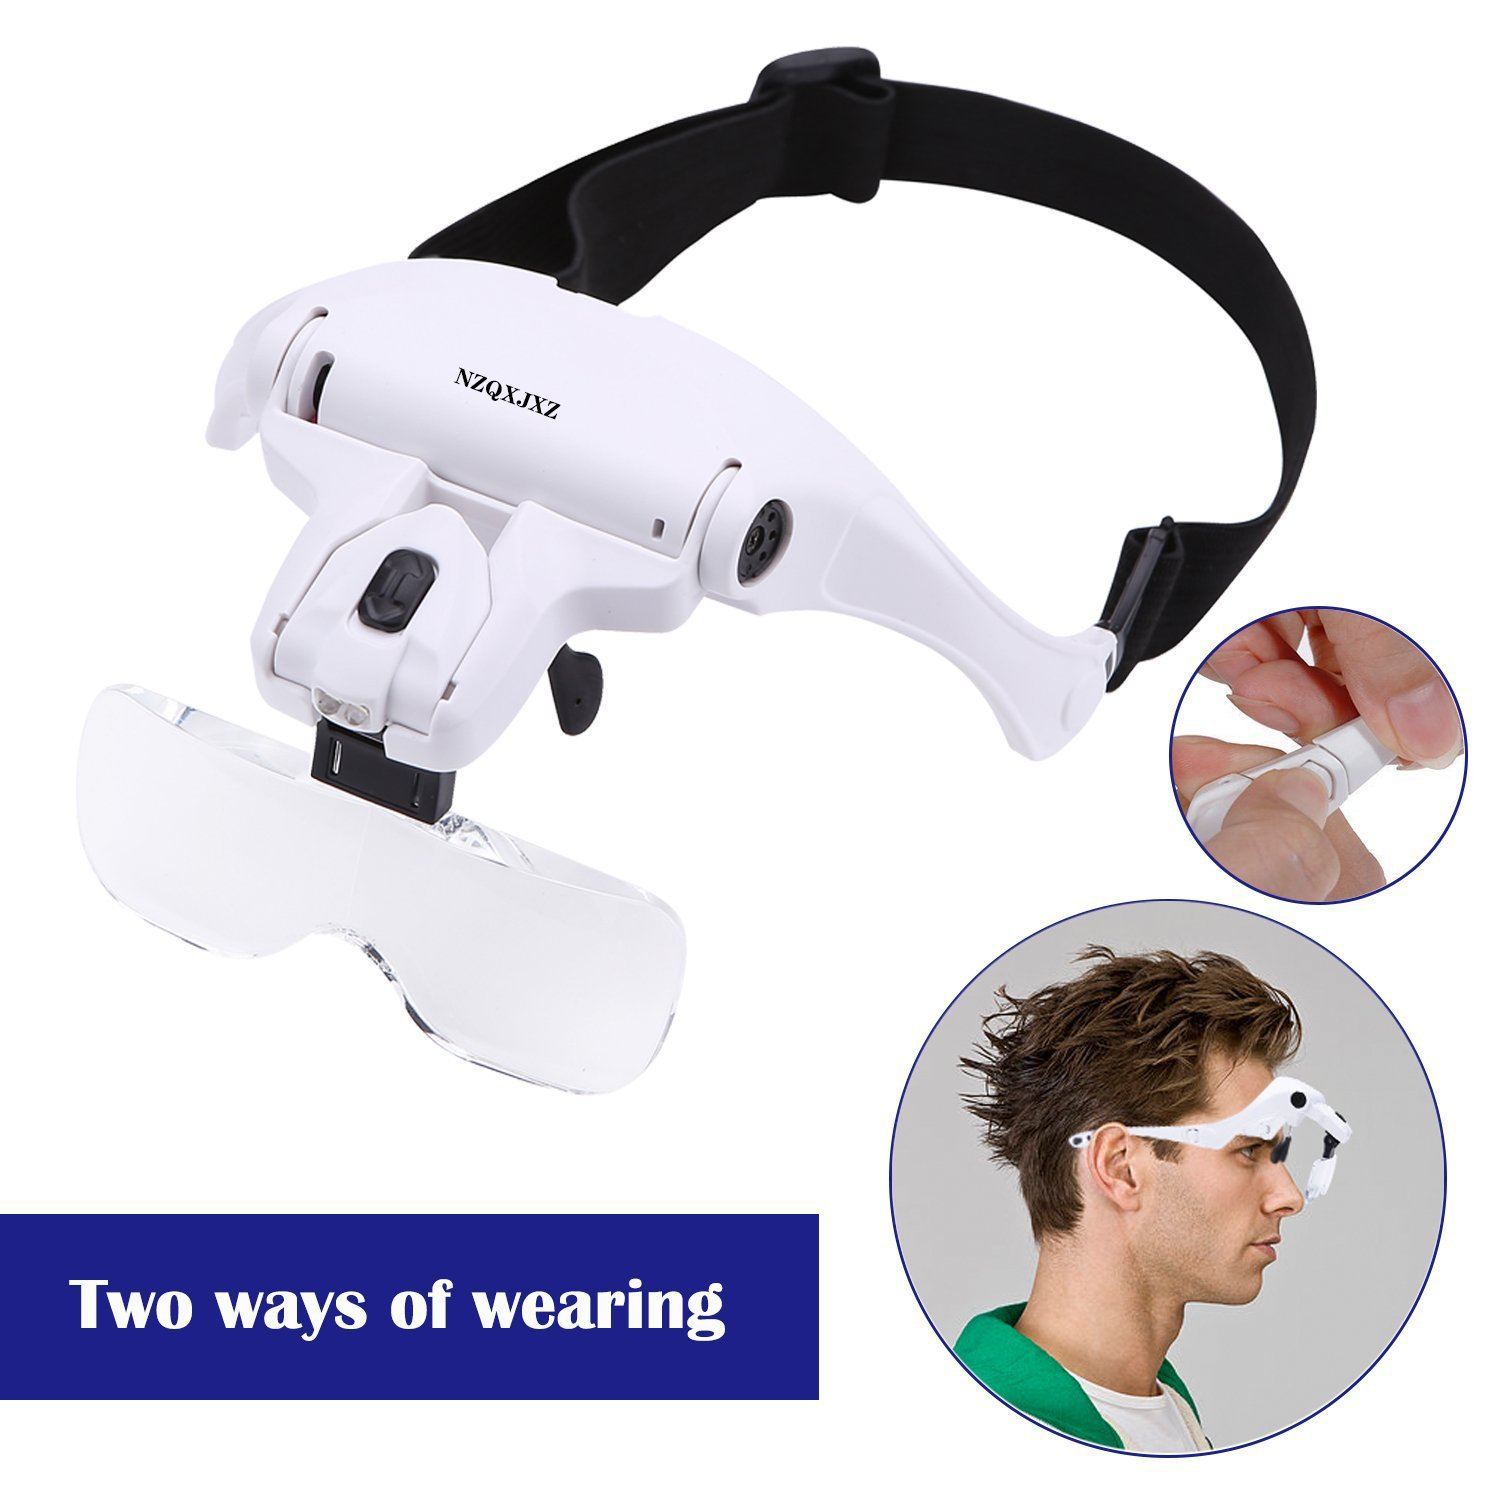 Headband Magnifier Glasses LED Magnifying Loupe Head Mount Magnifier Hands-Free Bracket and Headband are Interchangeable 5 Replaceable Lenses1.0X,1.5X,2.0X,2.5X,3.5X (Upgraded Version) by NZQXJXZ